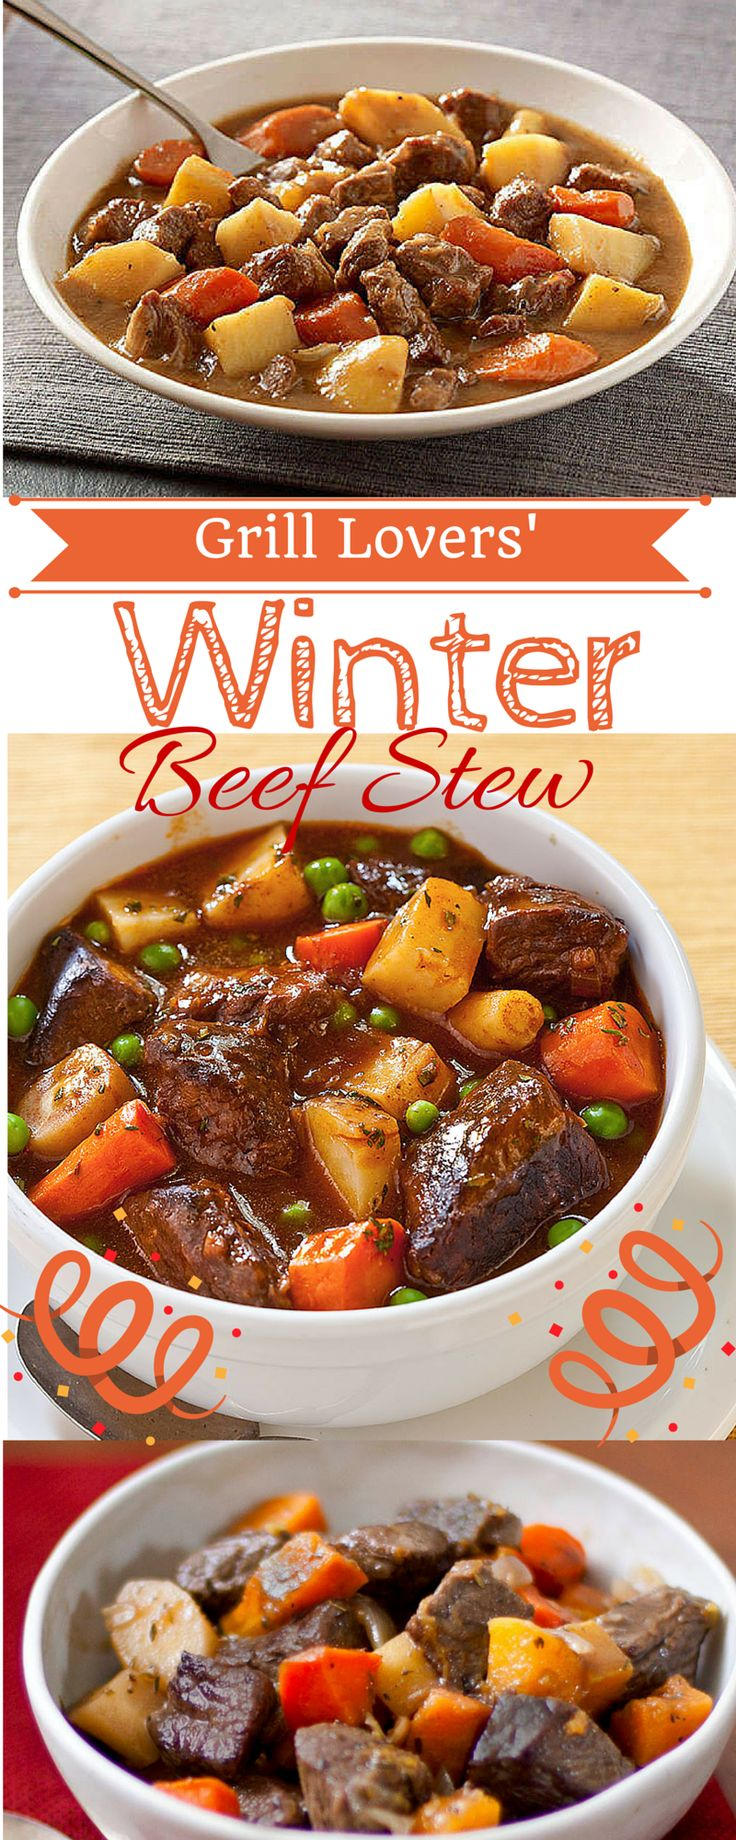 PrintGrill Lovers' Winter Beef Stew Recipe (Ready in about 12 hours | Servings 8) Ingredients• 2 pounds stew beef, cut into bite-sized cubes • 4 medium carrots, sliced • 1 parsnip, sliced • 1 onion, chopped • 2 stalks celery, sliced • 1 (28-ounce) can tomatoes • 1/2 cup quick-cooking tapioca • 1 teaspoon salt[...]